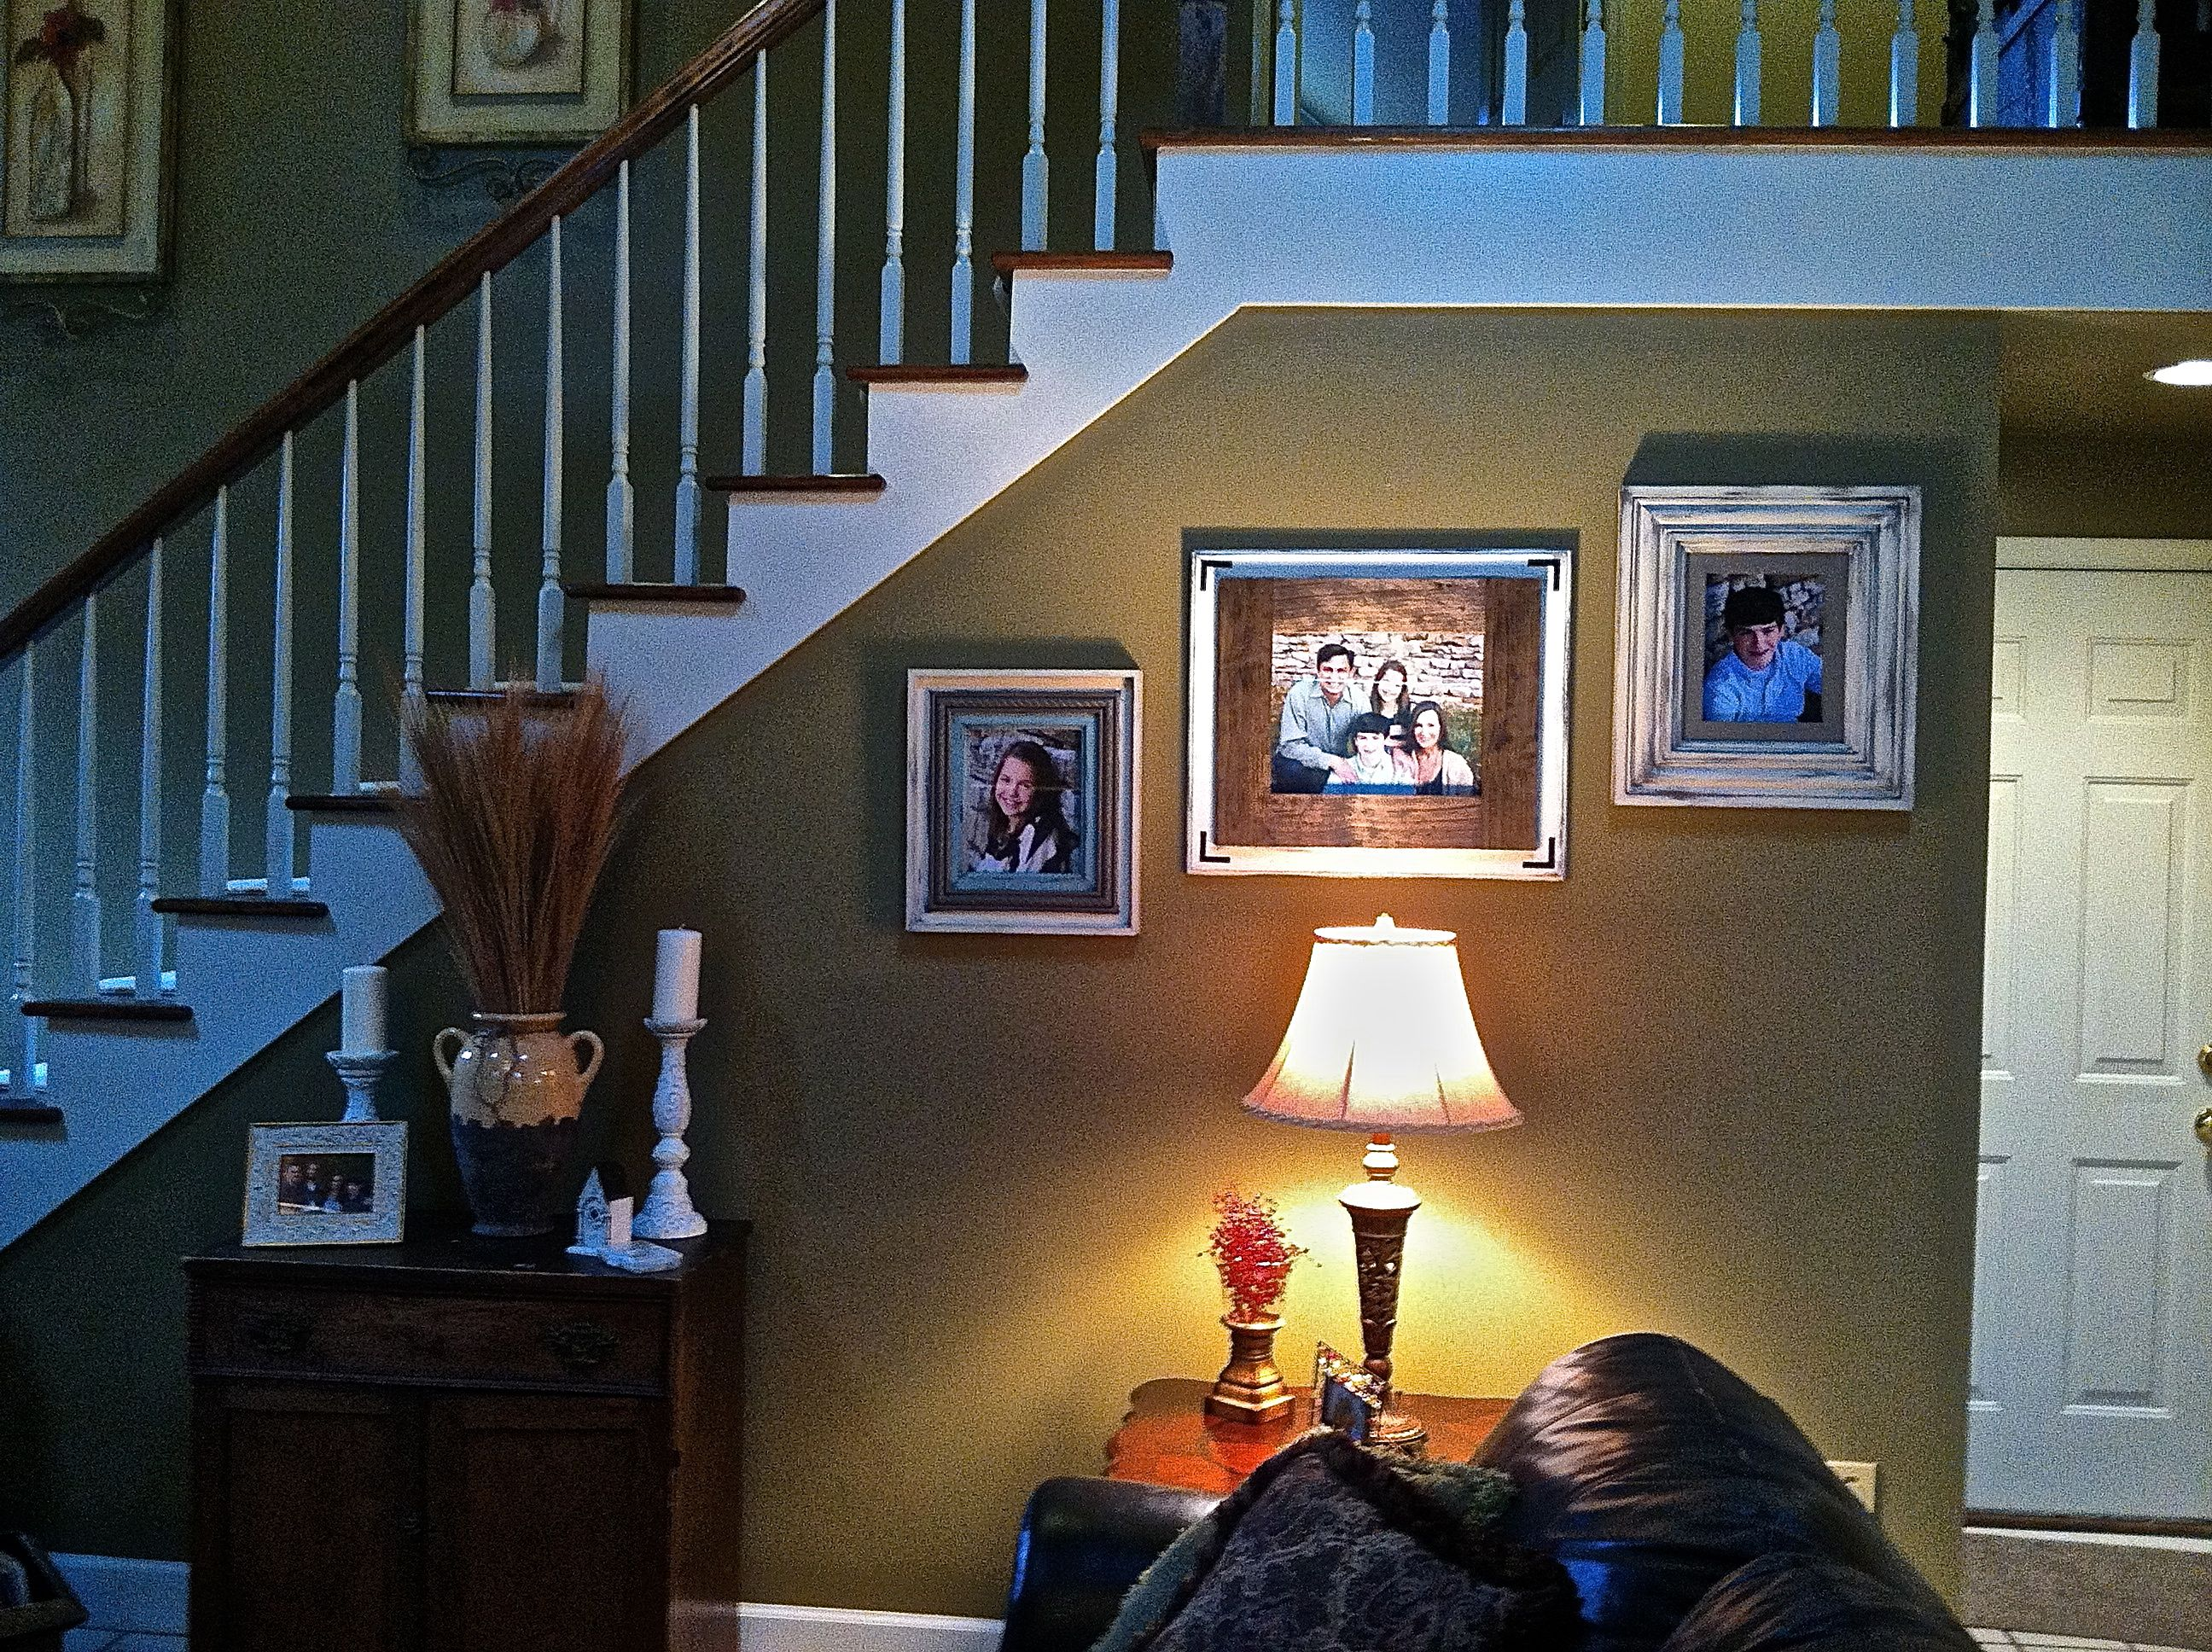 Beautiful family pictures displayed in Kohlston Designs frames.